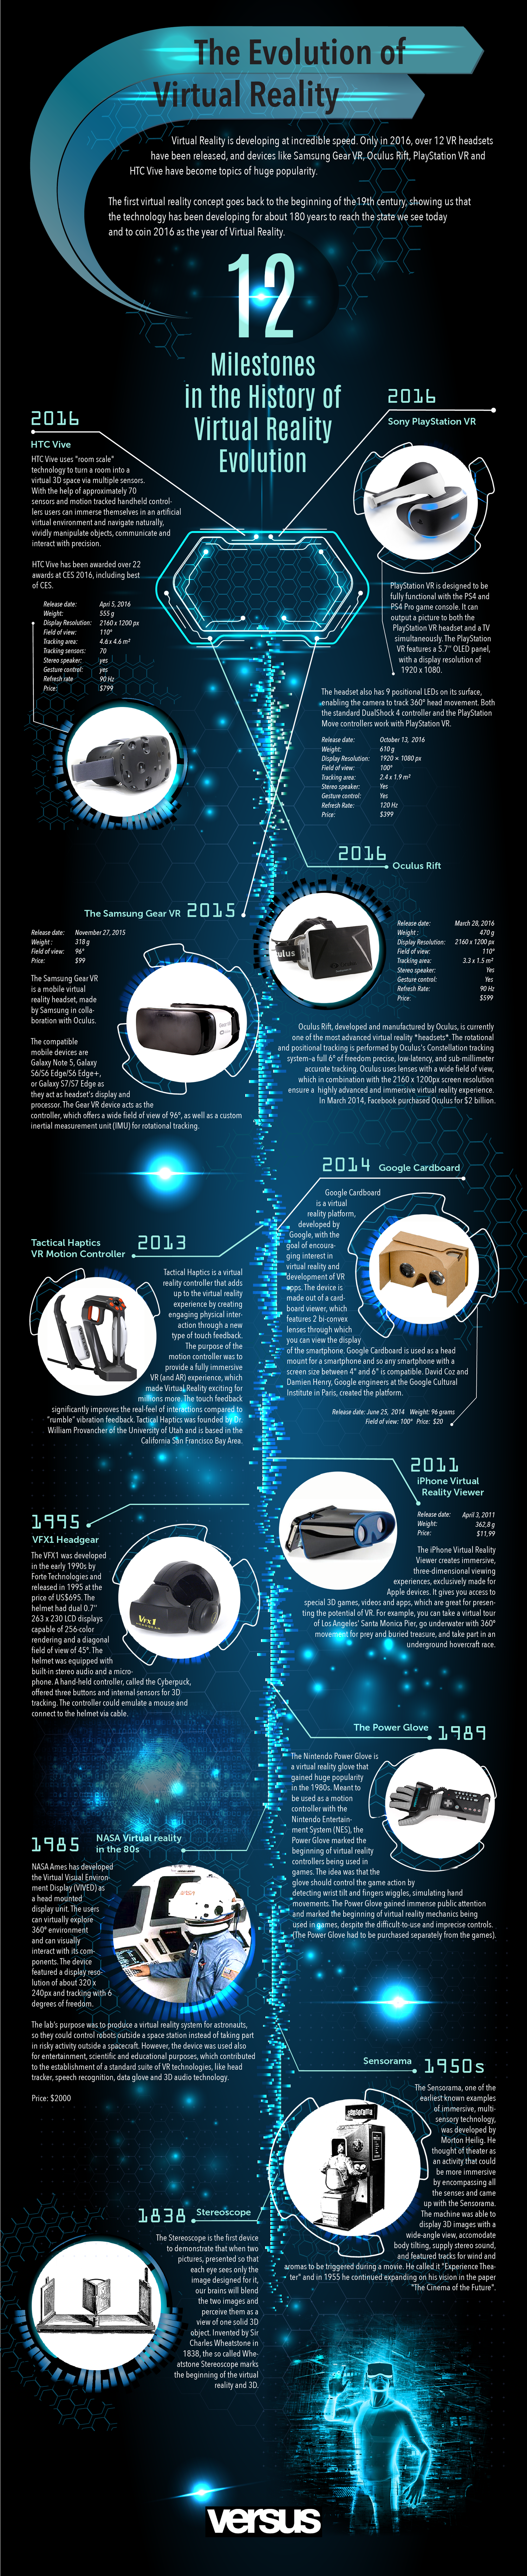 The 12 Milestones in the History of Virtual Reality.png